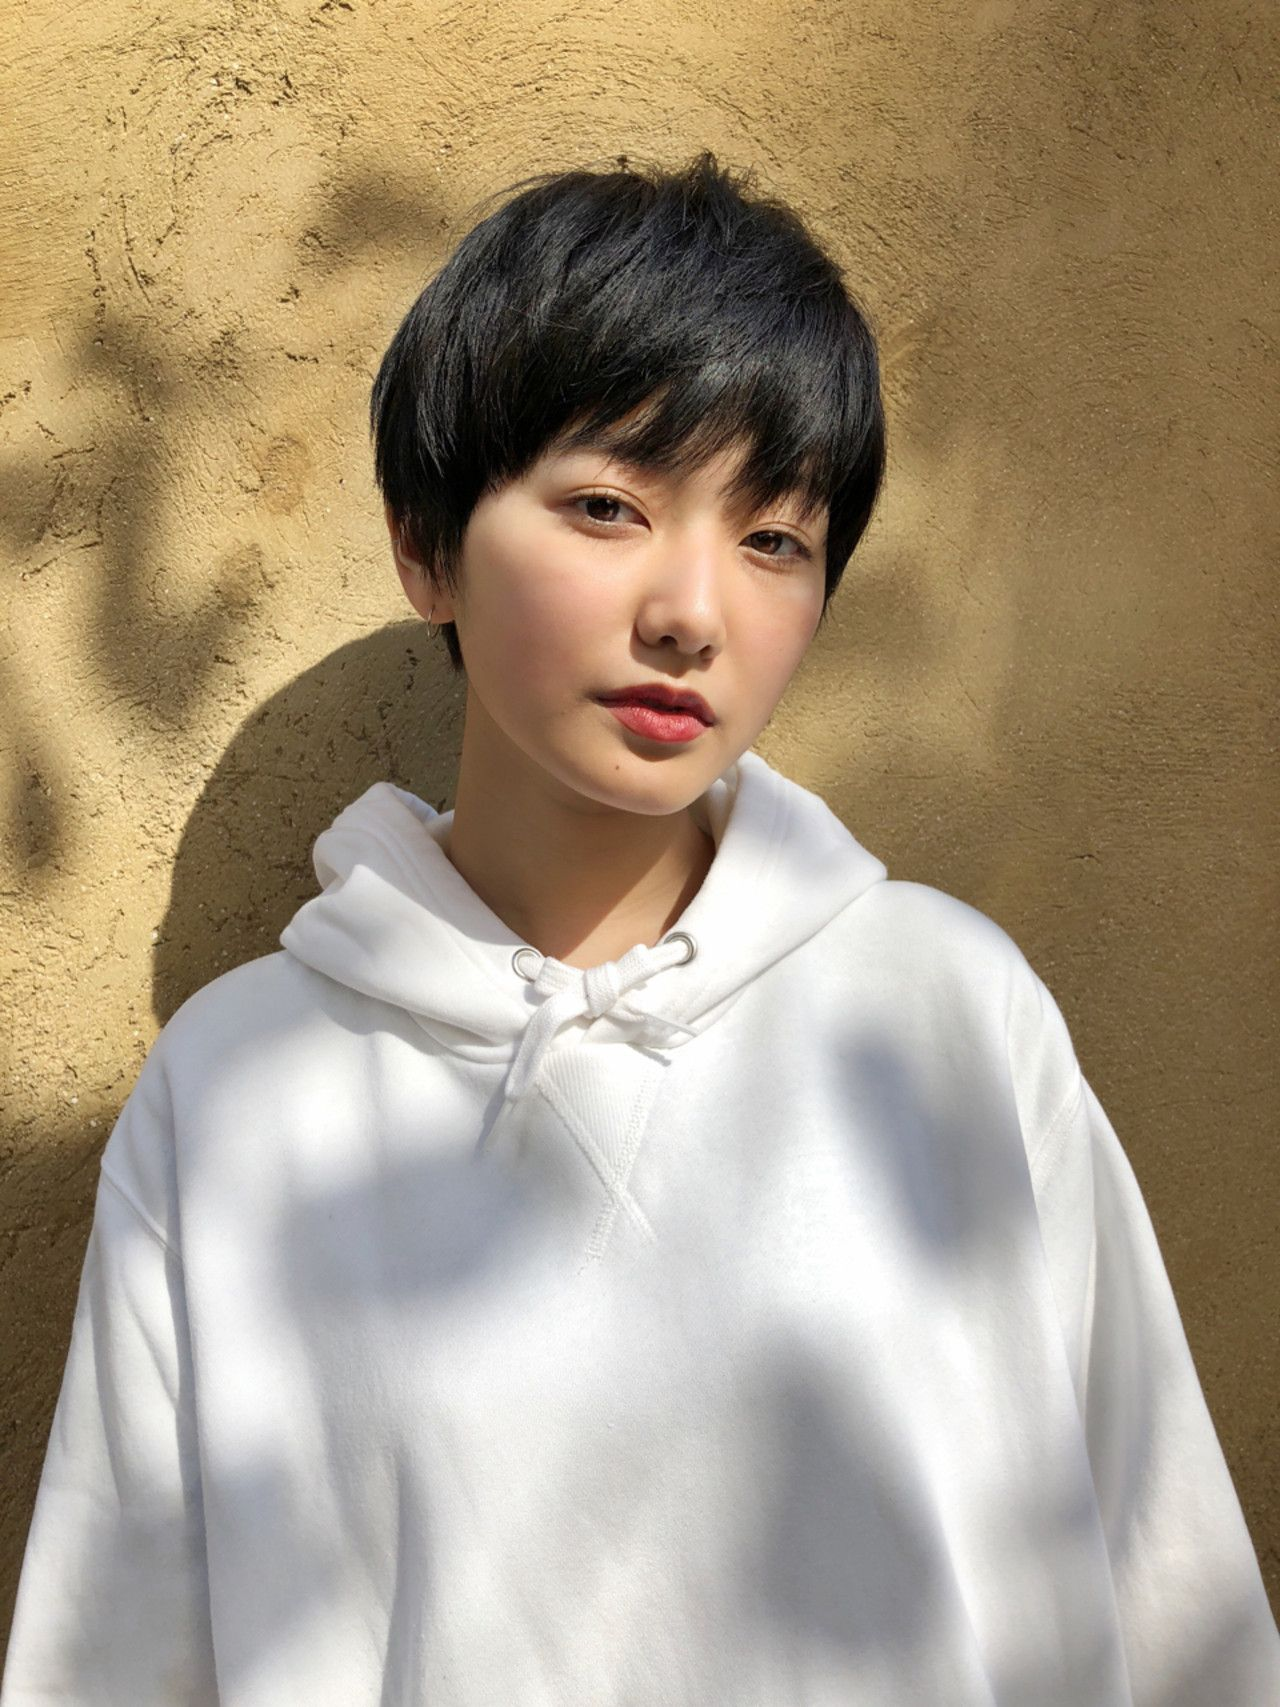 14 Gorgeous Asian Pixie Haircuts that Easy to Maintain 6759c2334337fc66b88e5d78fb4c4a99